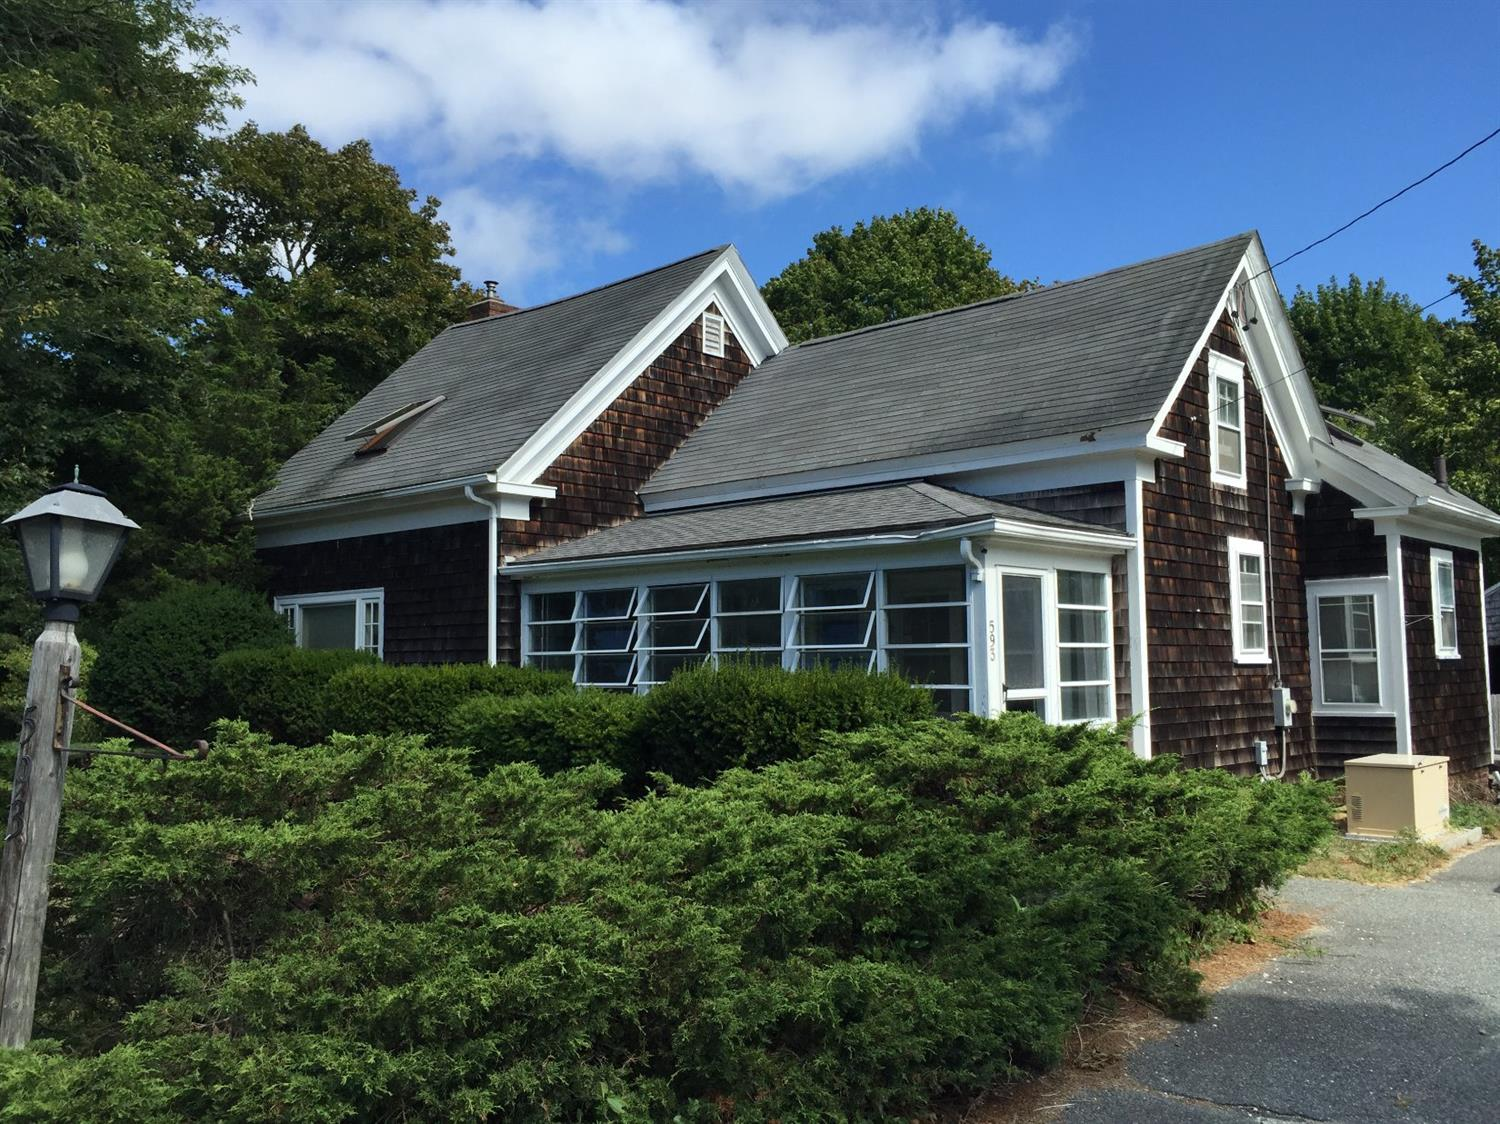 Additional photo for property listing at 593 Depot Street  Harwich, Massachusetts 02645 United States